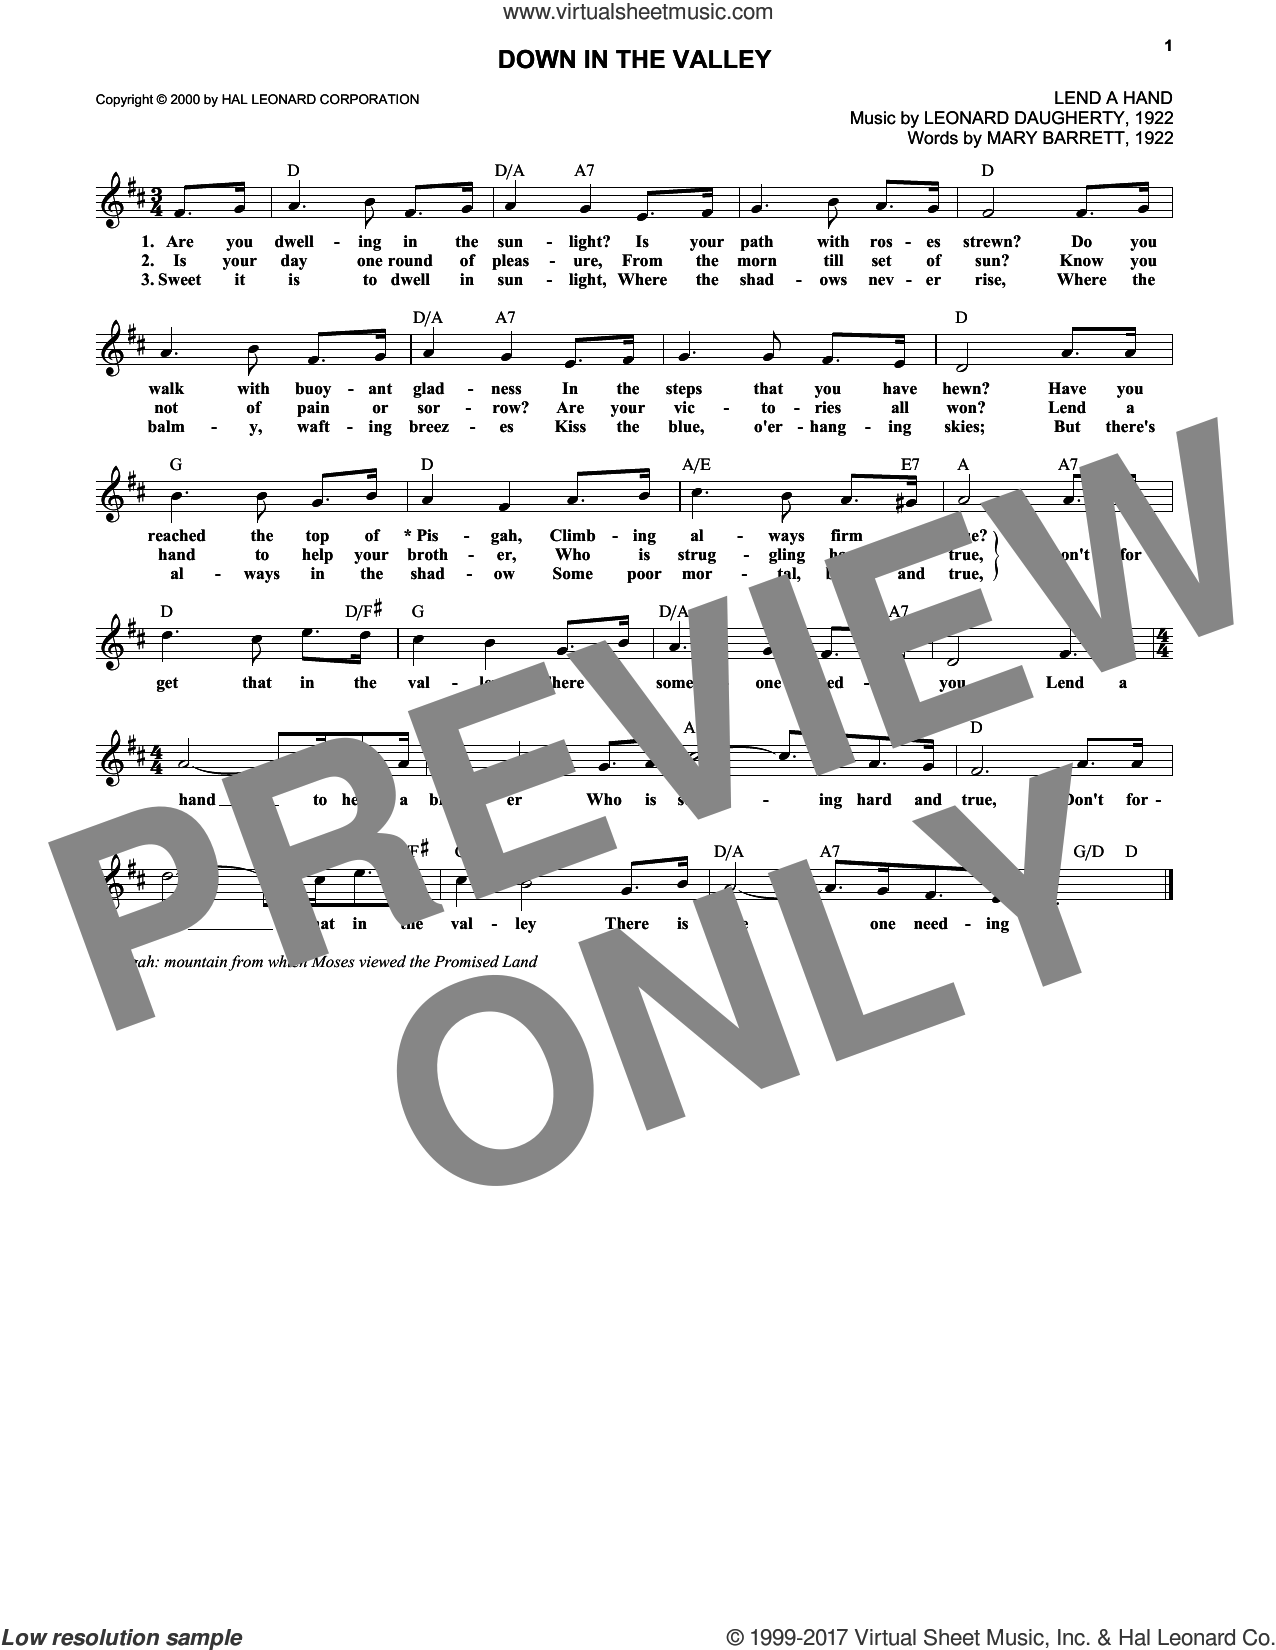 Down In The Valley sheet music for voice and other instruments (fake book) by Leonard Daugherty and Mary Barrett, intermediate skill level